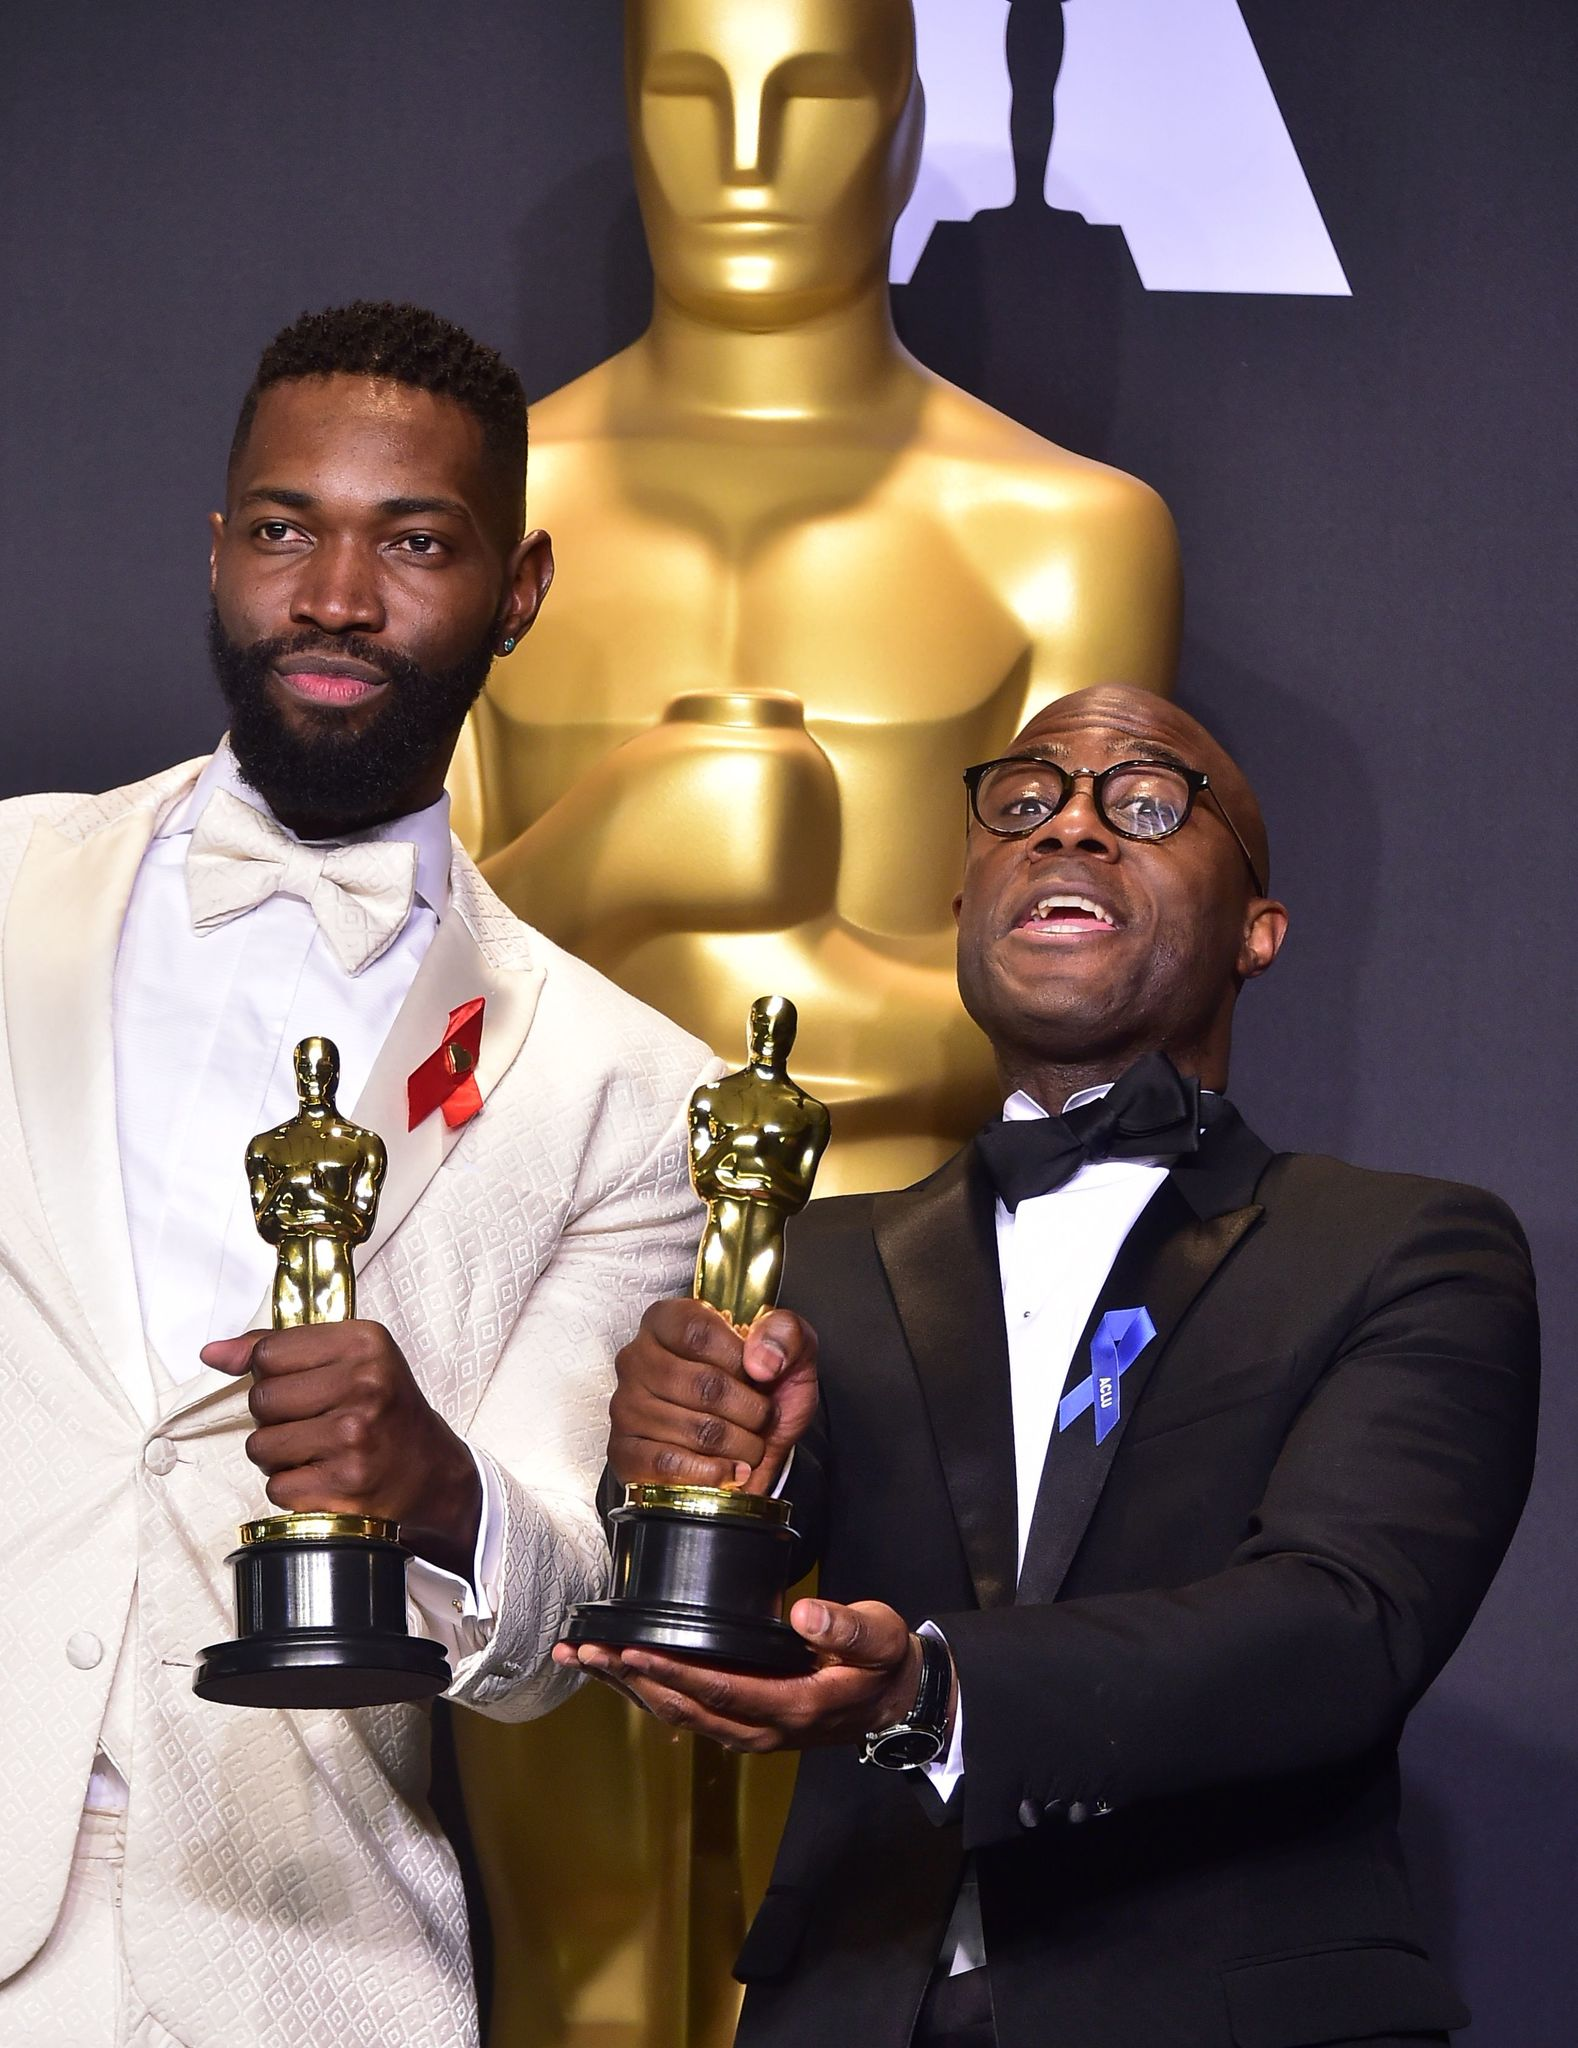 Barry Jenkins and Tarell Alvin McCraney at an event for Moonlight (2016)